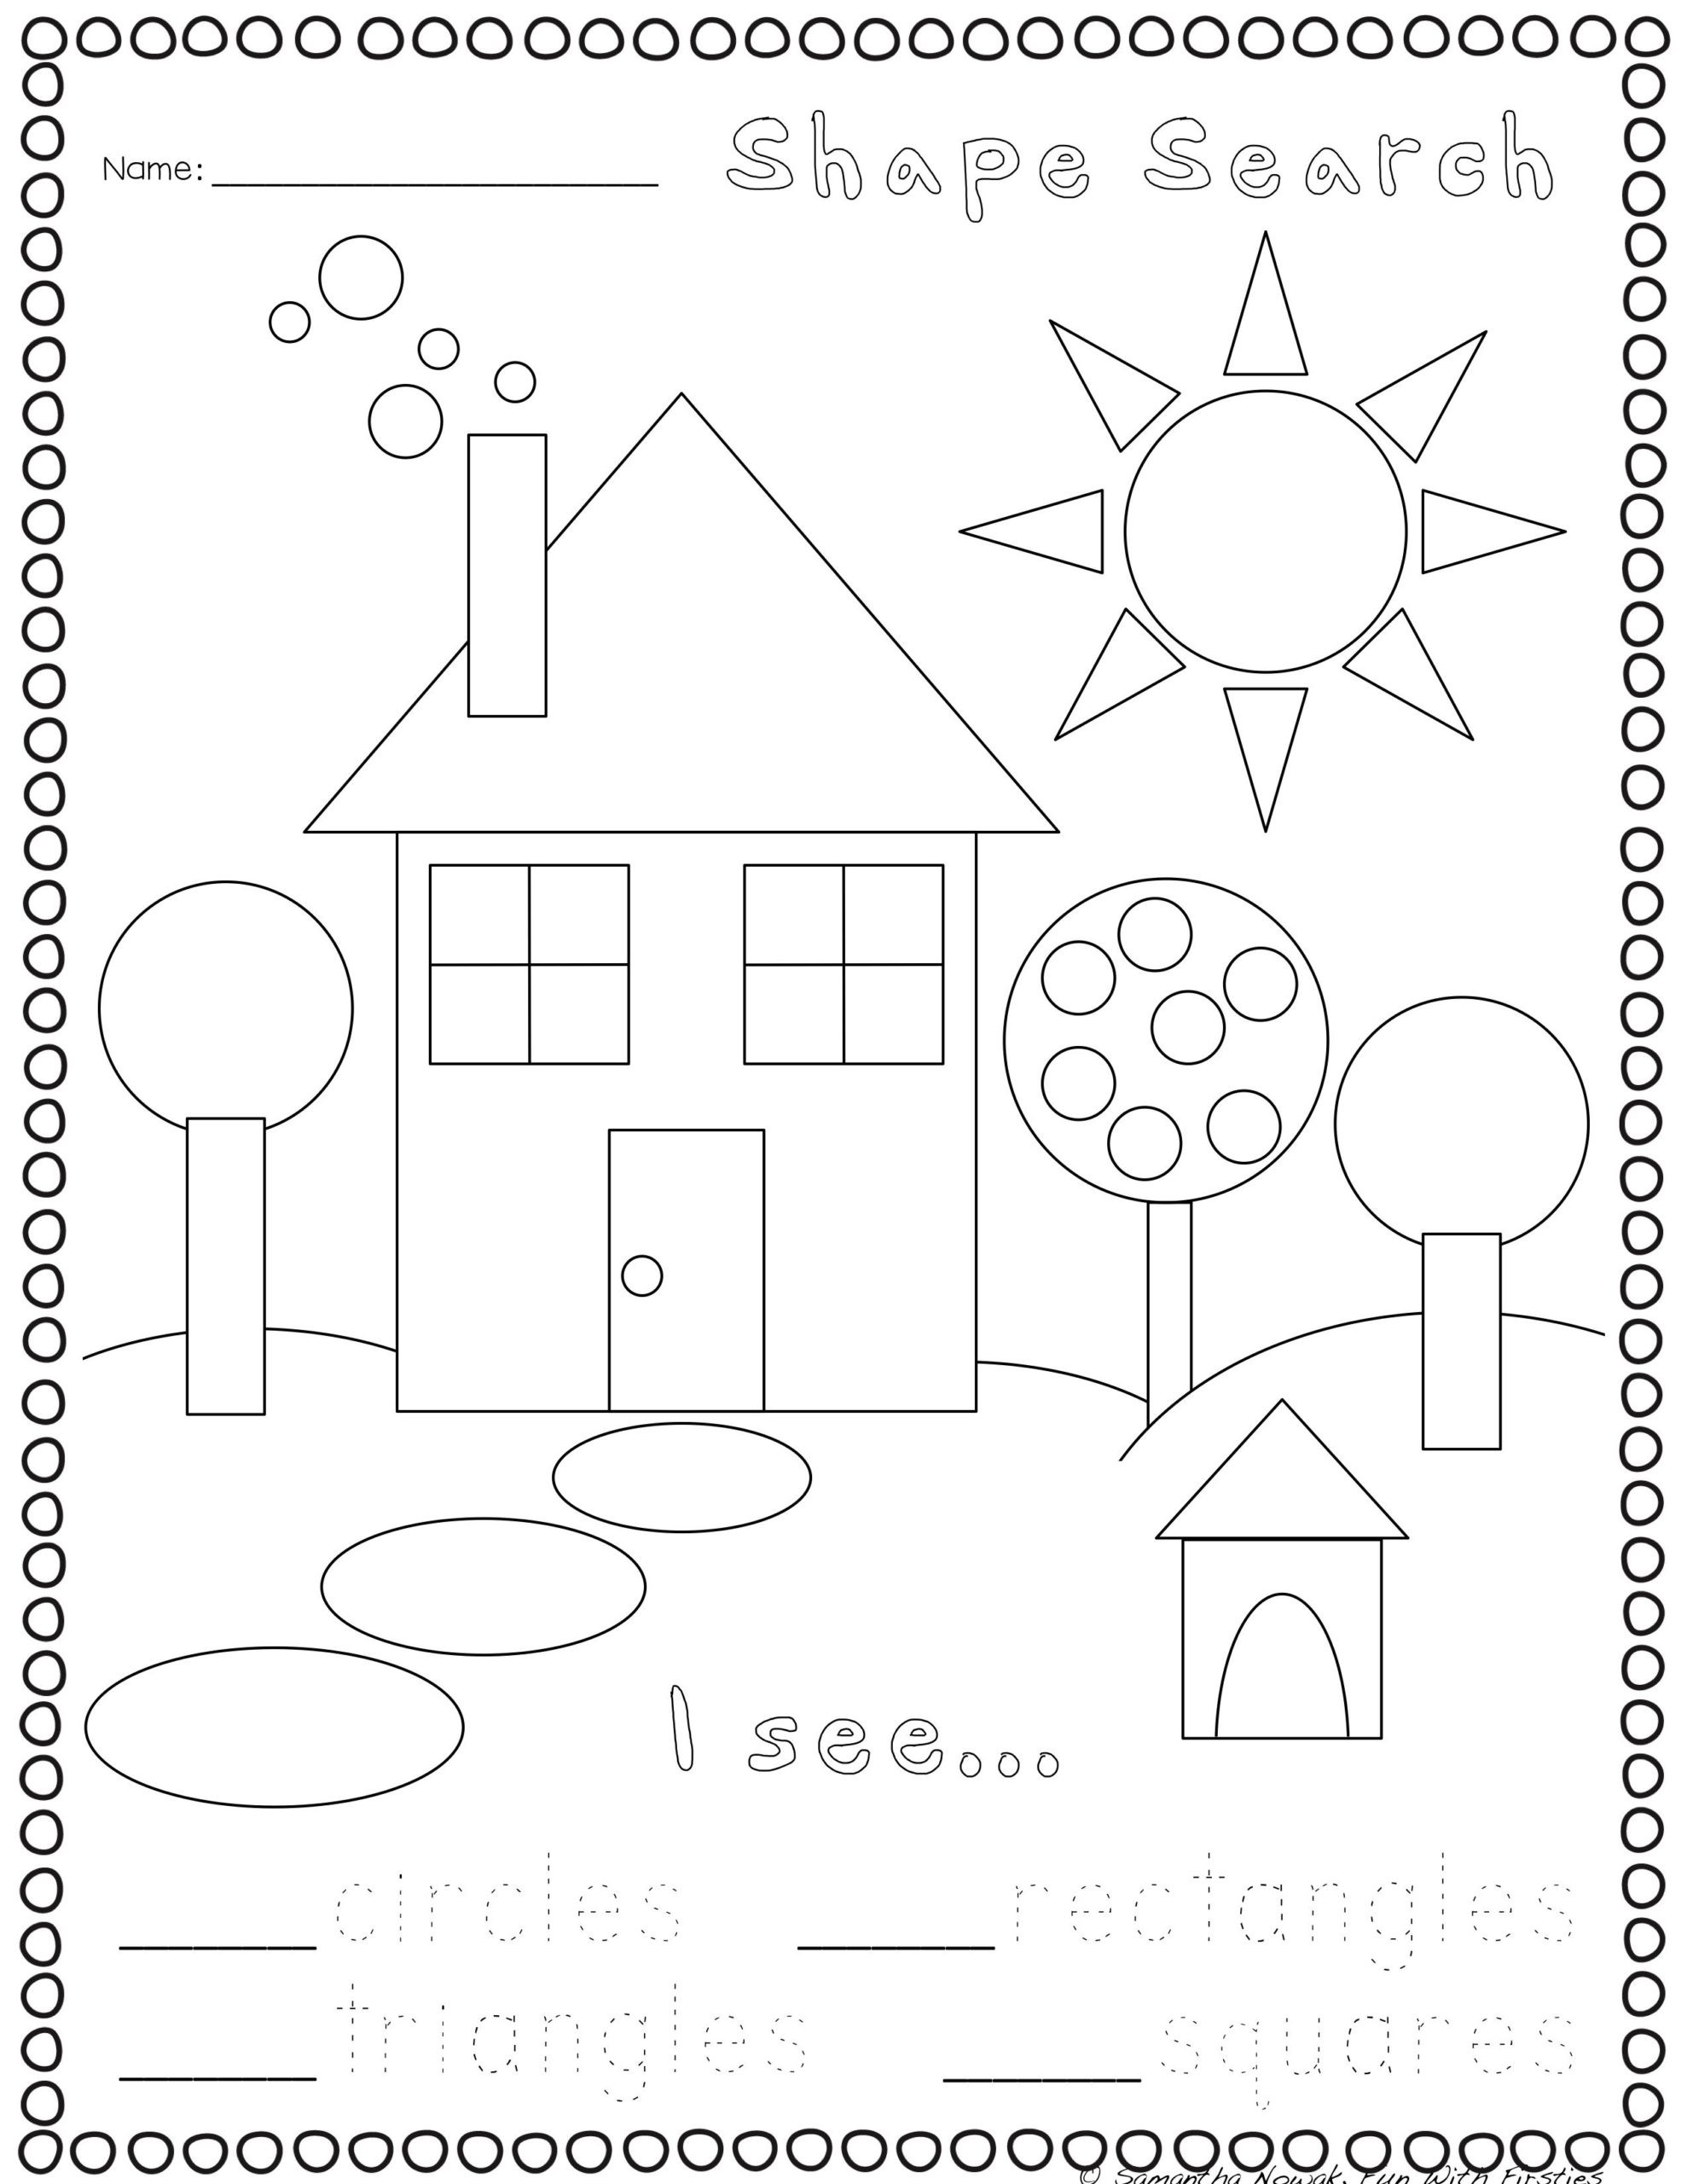 Circle Graphs Worksheets 7th Grade Print Go Geometry Practice Worksheets Shapes Circle Graphing